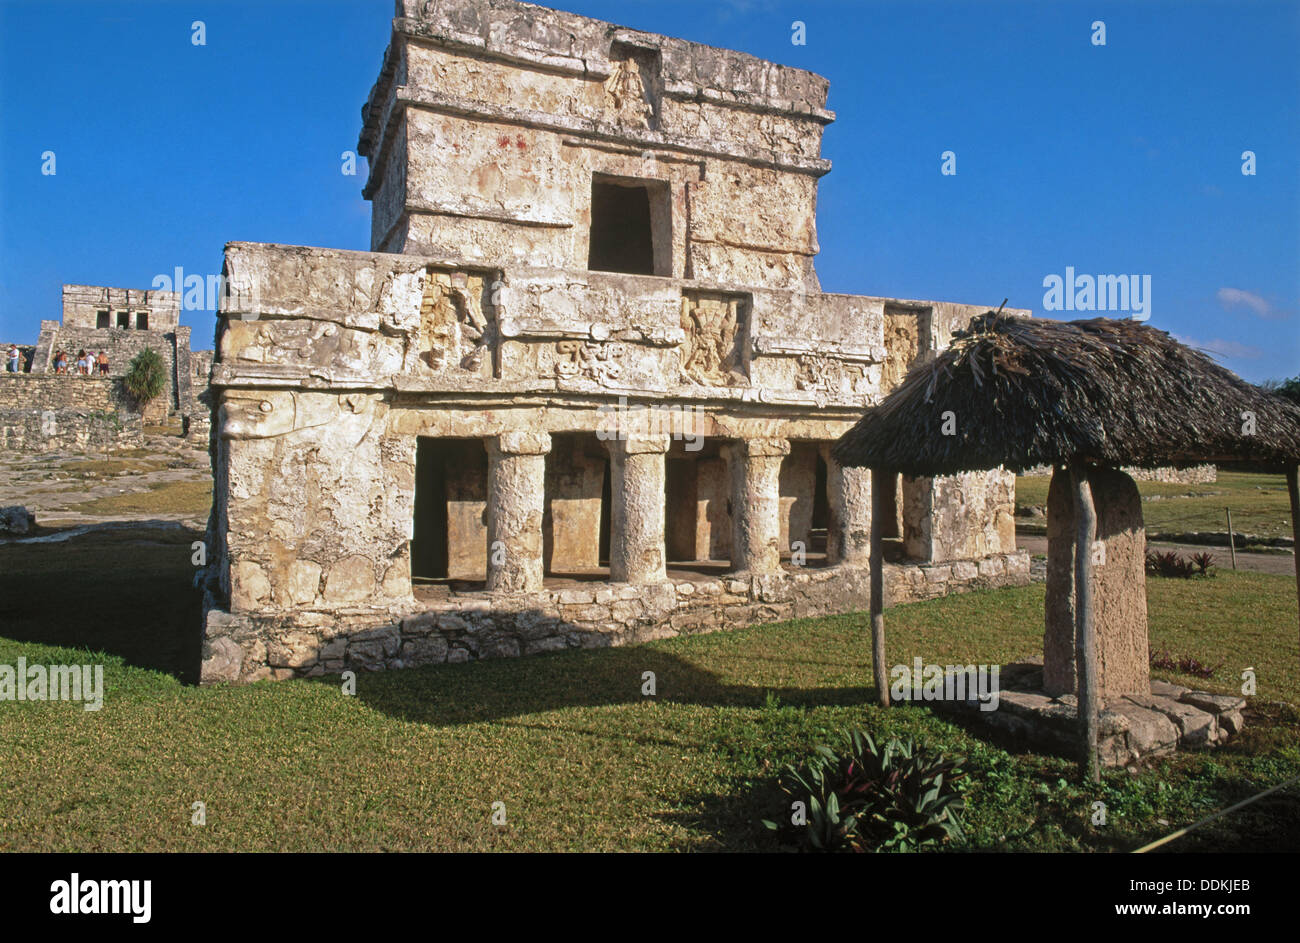 Temple of Frescoes (built between 1200 and 1524), Tulum. Yucatan, Mexico - Stock Image